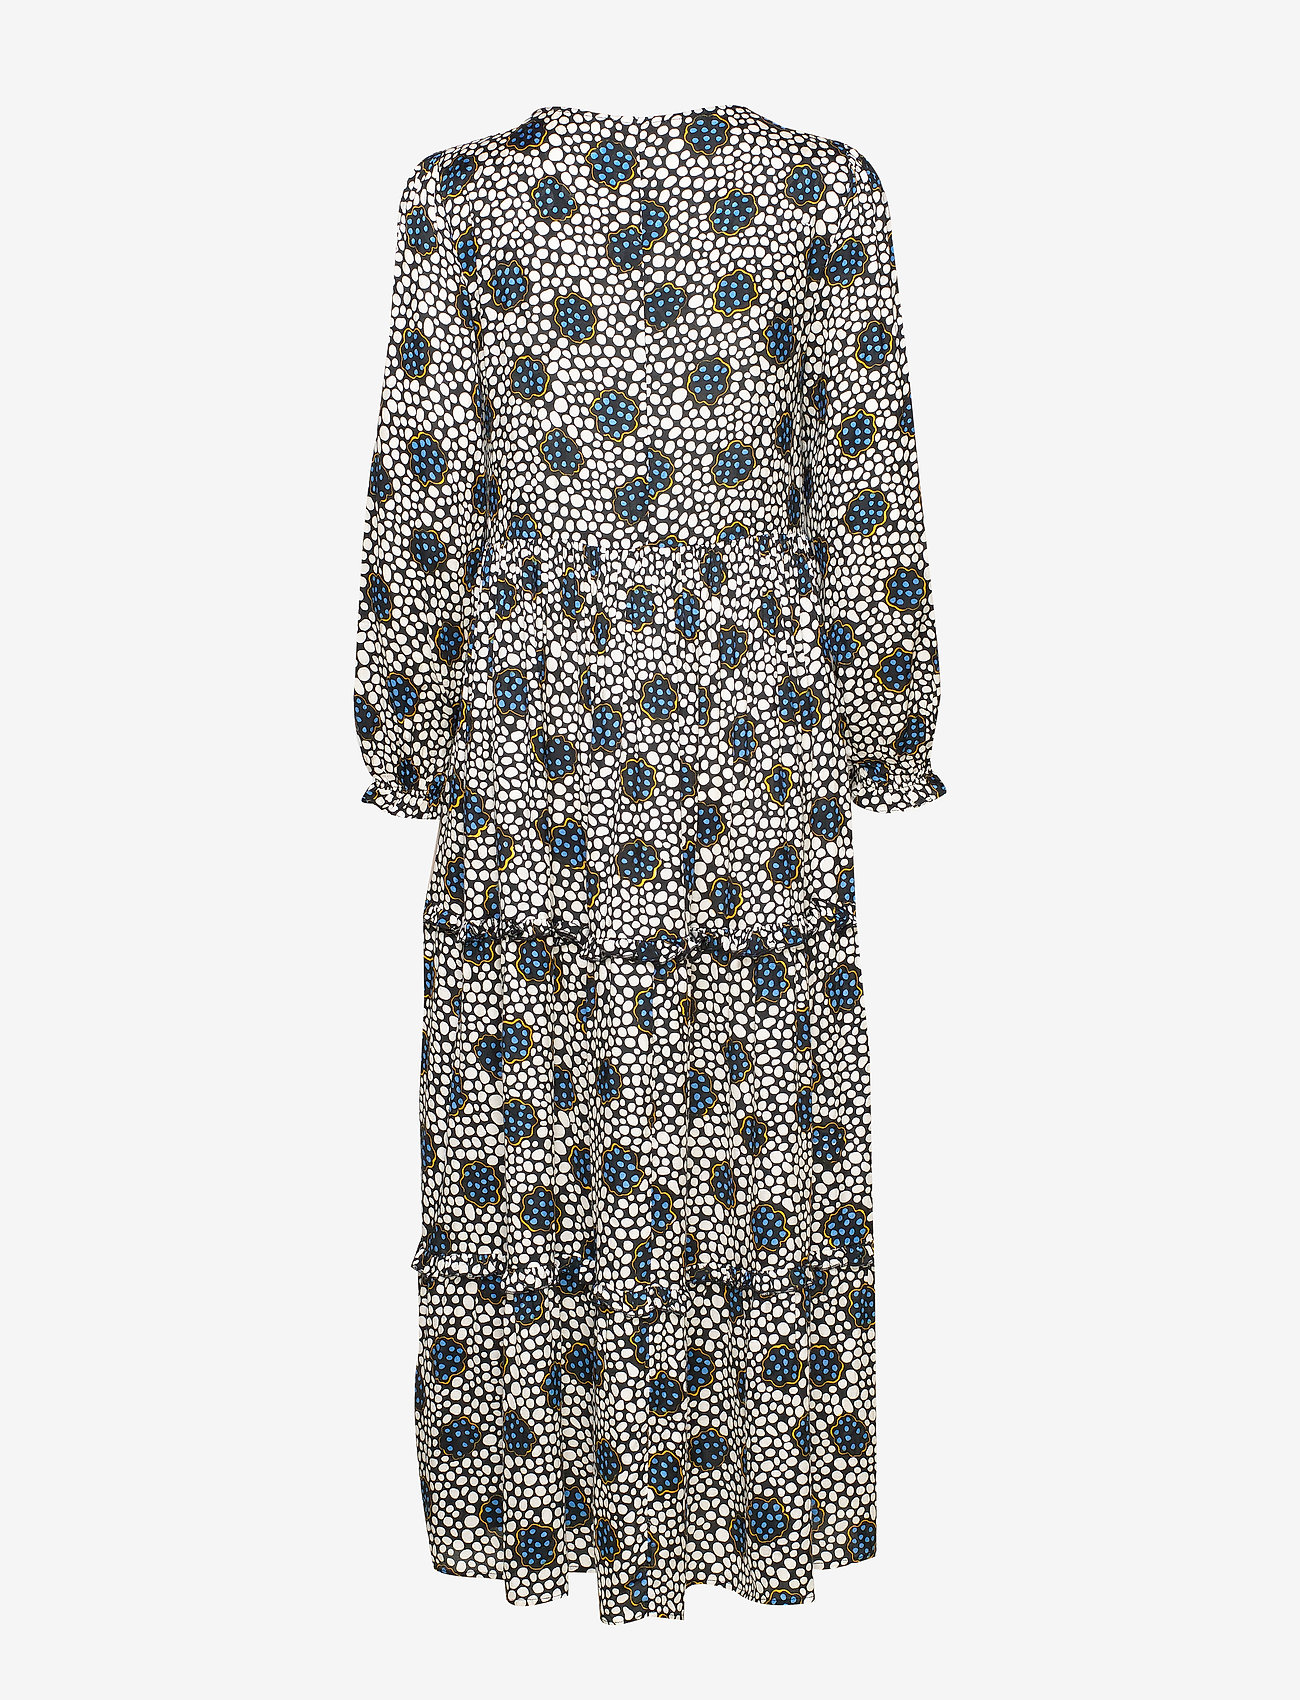 Beate Maxi Dress (All Over Print) (114 €) - Storm & Marie 535E6